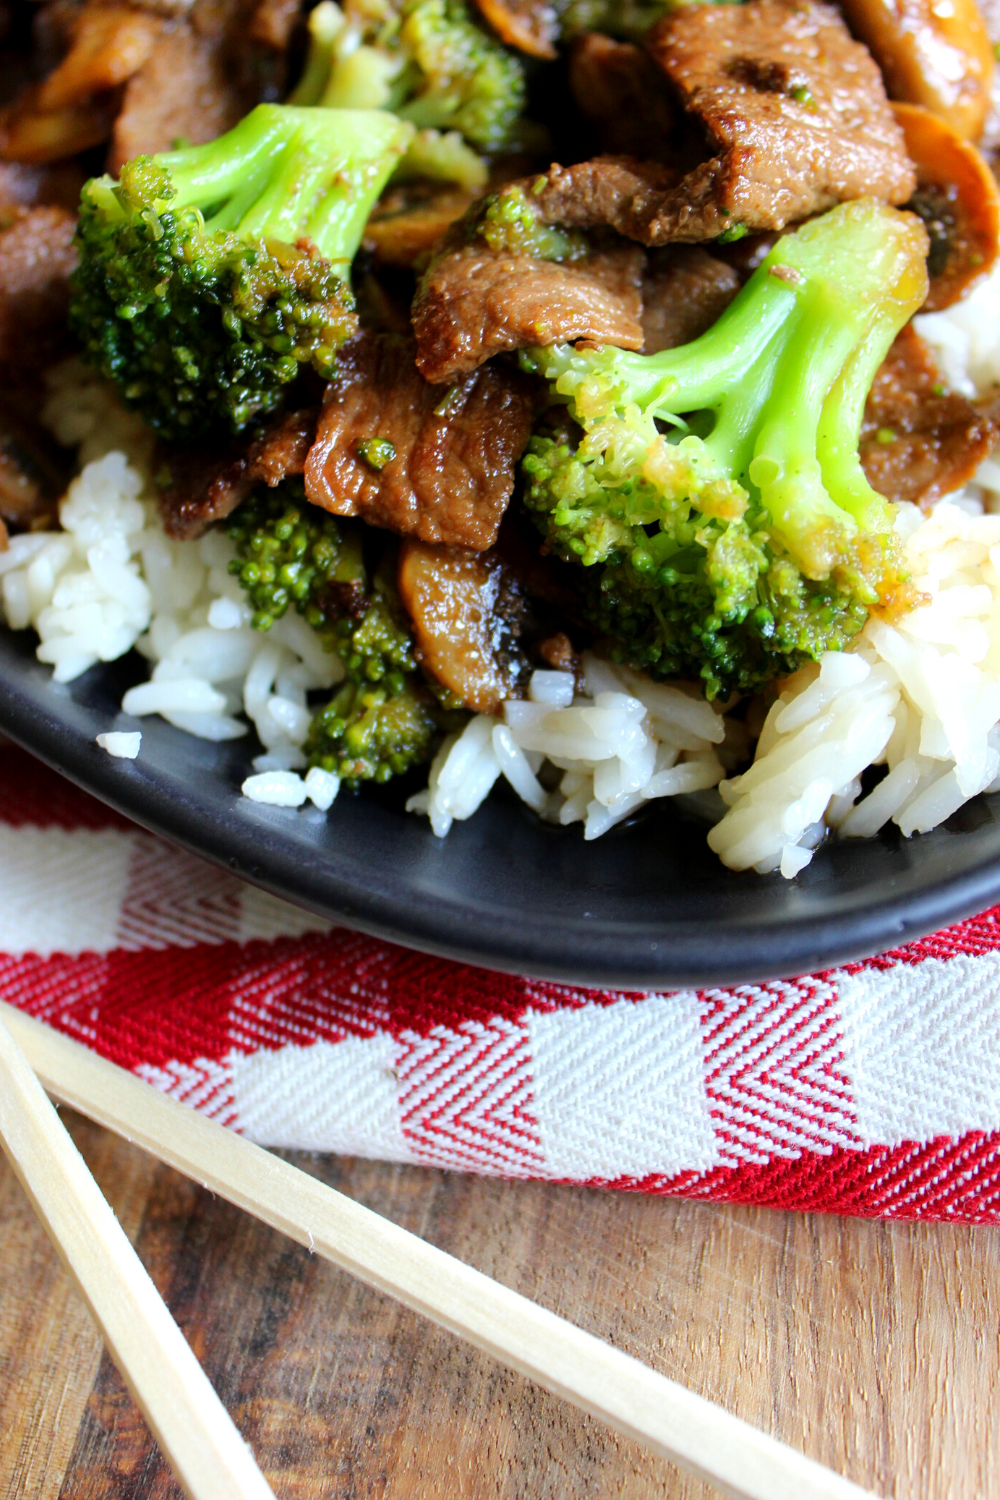 Better Than Takeout Beef & Broccoli Recipe Easy One Pan Beef and Broccoli with Mushrooms Homemade Chinese Simple Healthy Beef Stir Fry My Farmhouse Table